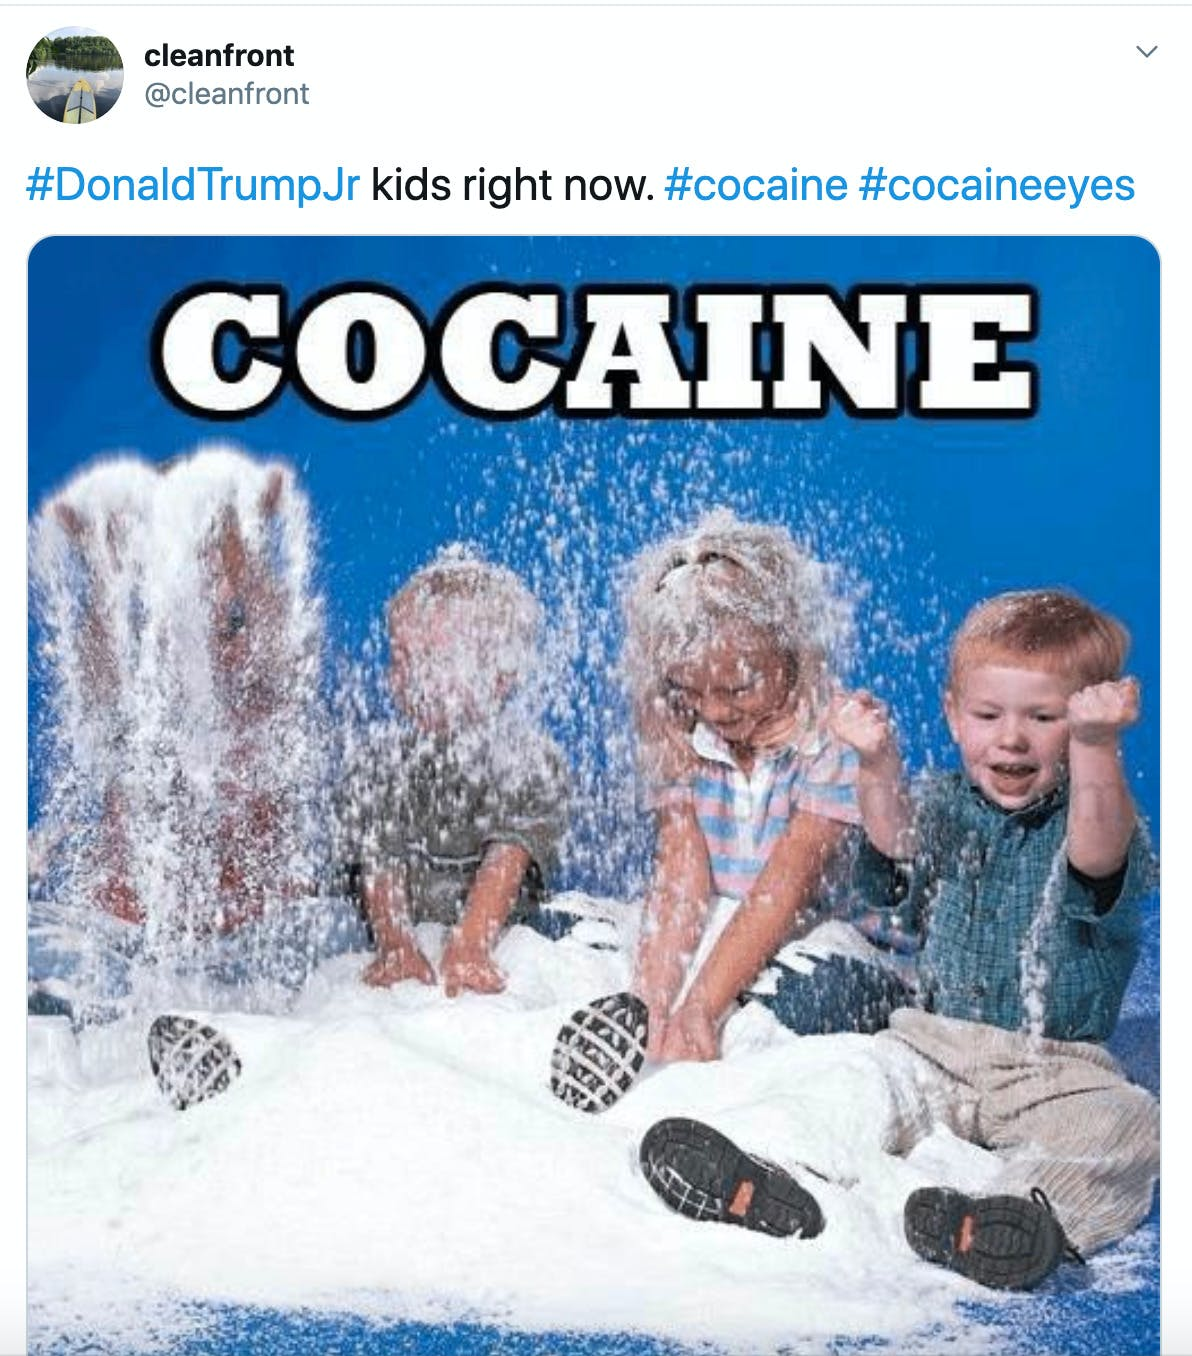 """#DonaldTrumpJr kids right now. #cocaine #cocaineeyes"" image of toddlers playing in a heap of white powder"